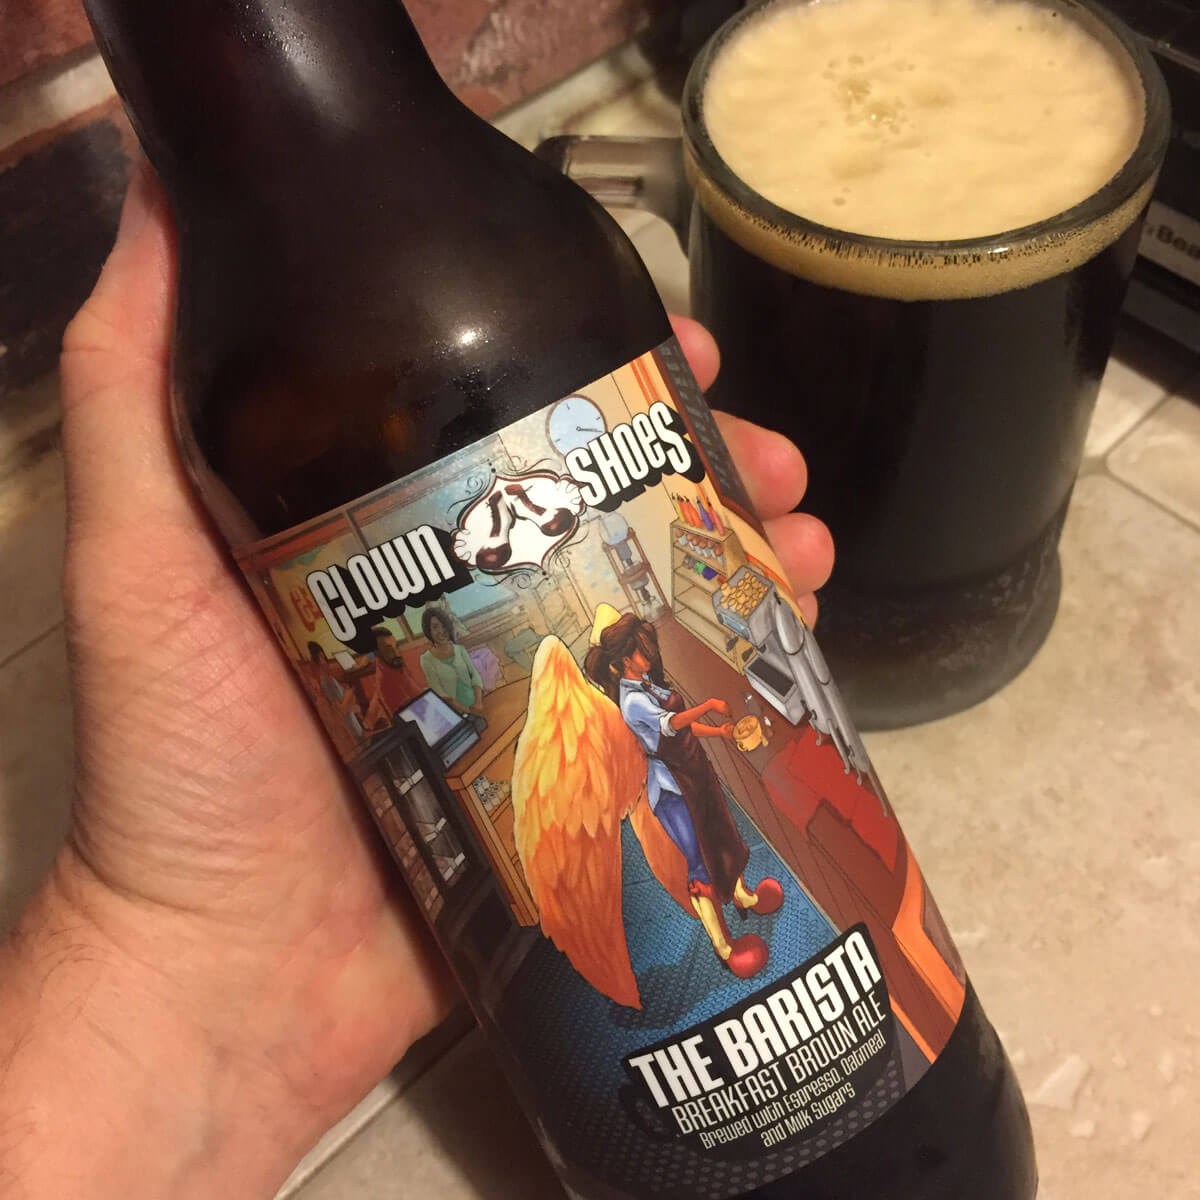 The Barista, an American Brown Ale brewed by Clown Shoes Beer